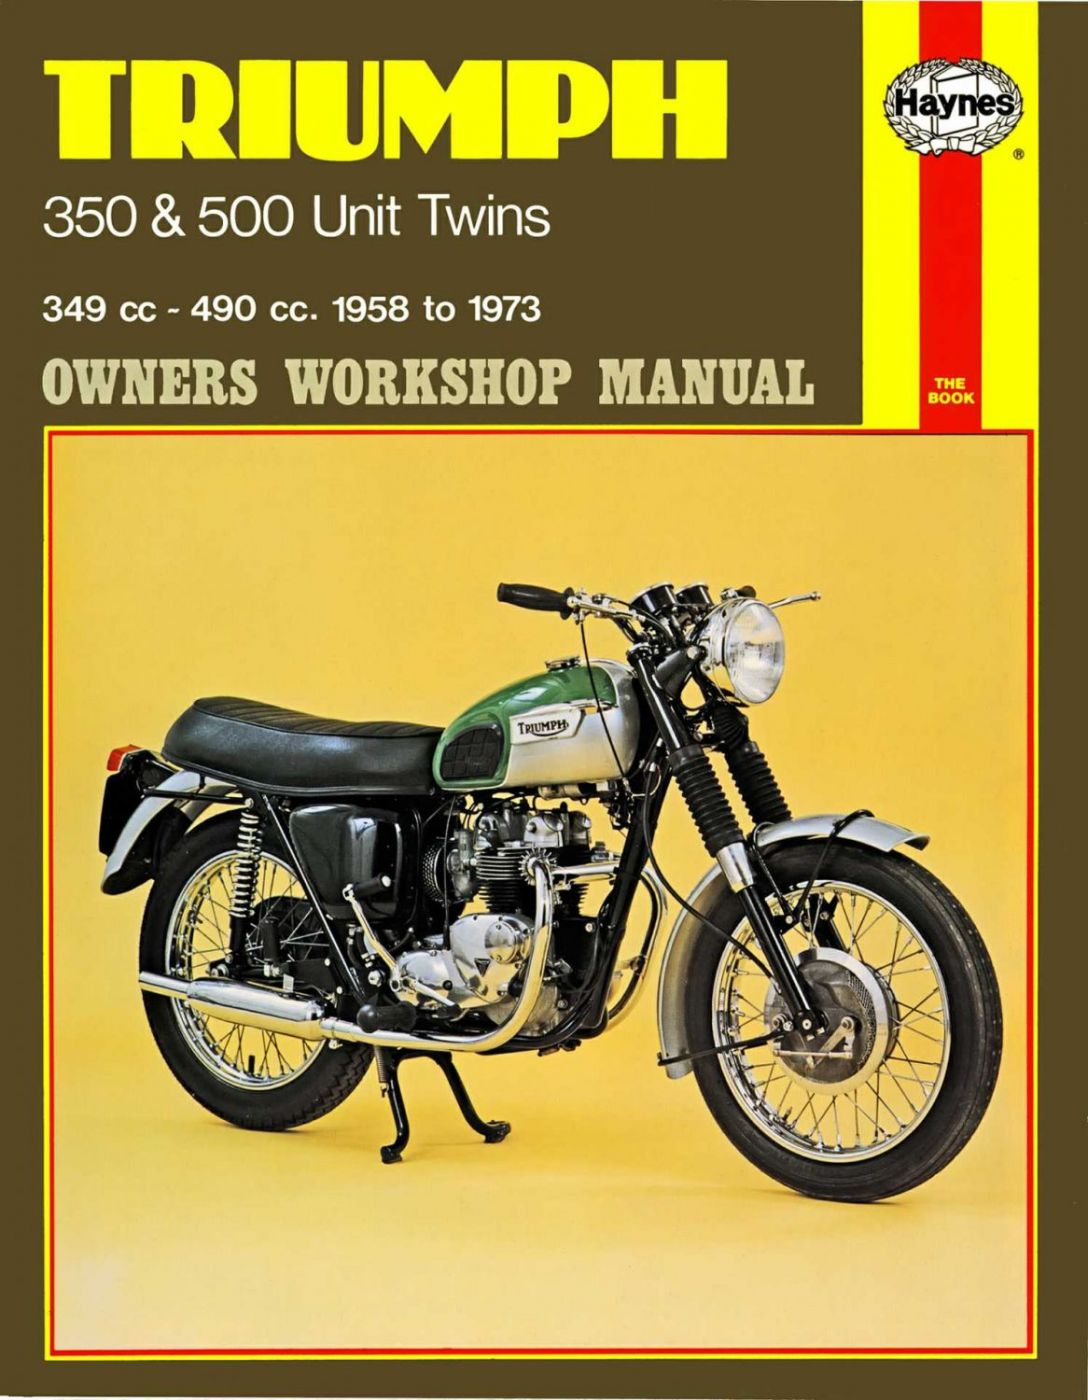 Haynes Manuals - 680137Y image